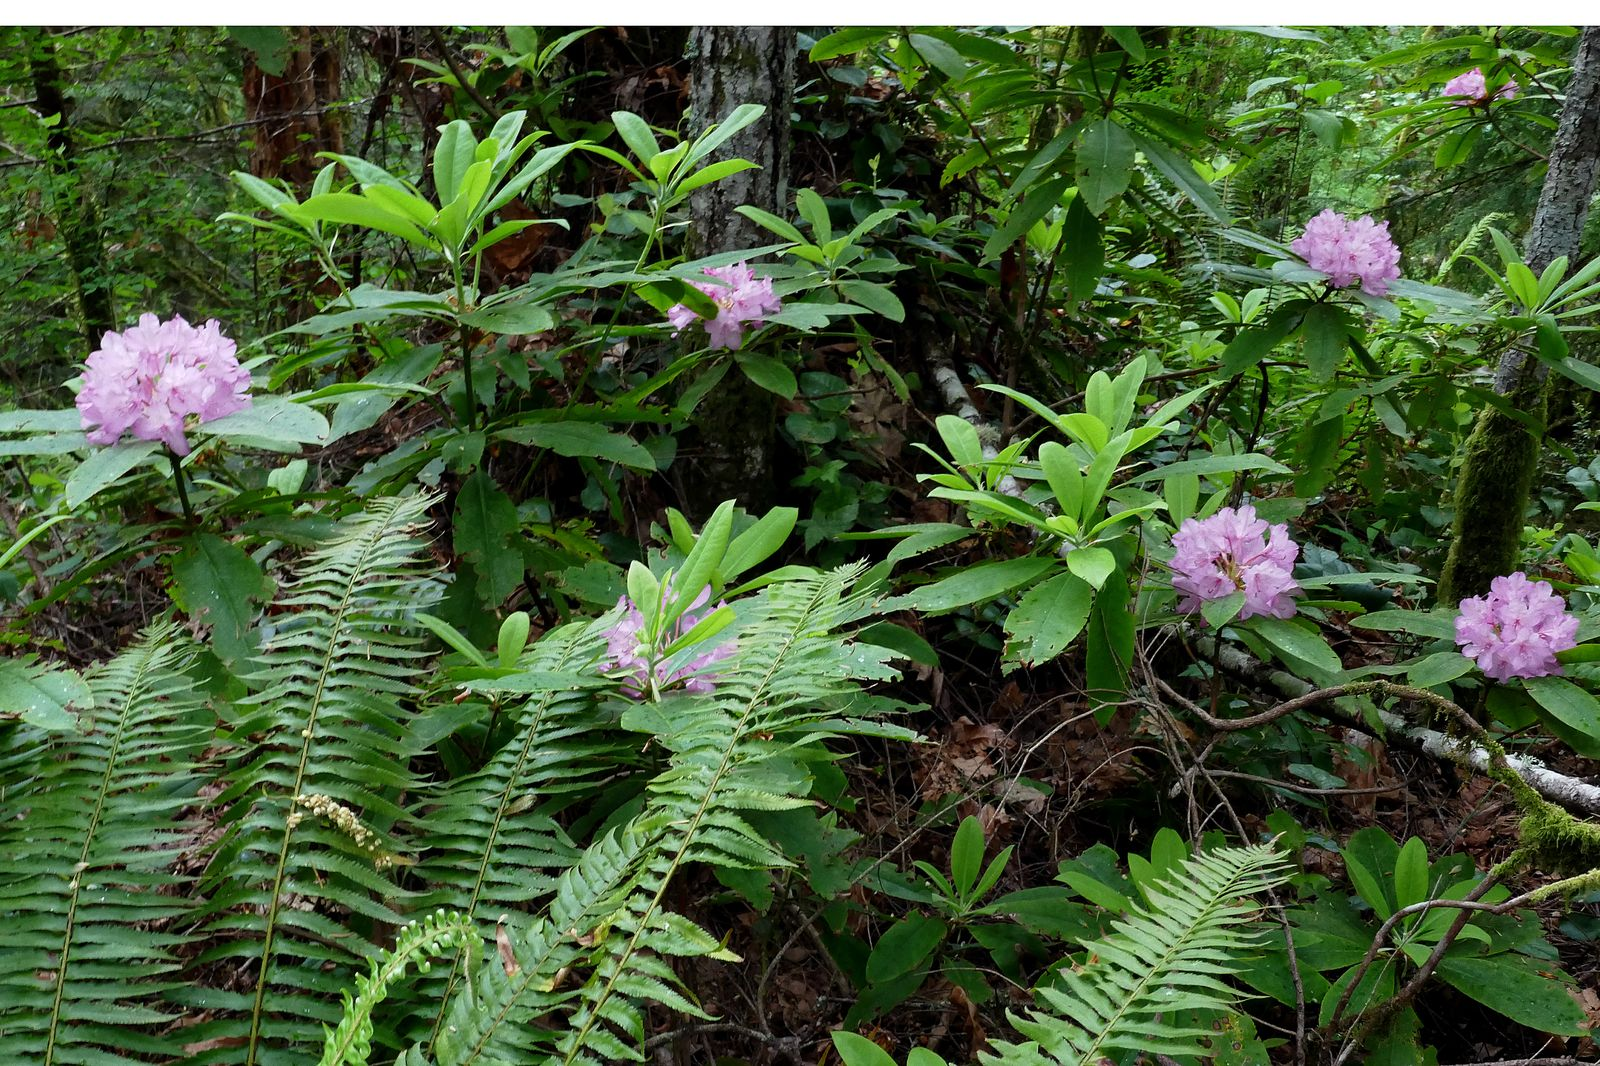 Wild Rhodies growing along the trail